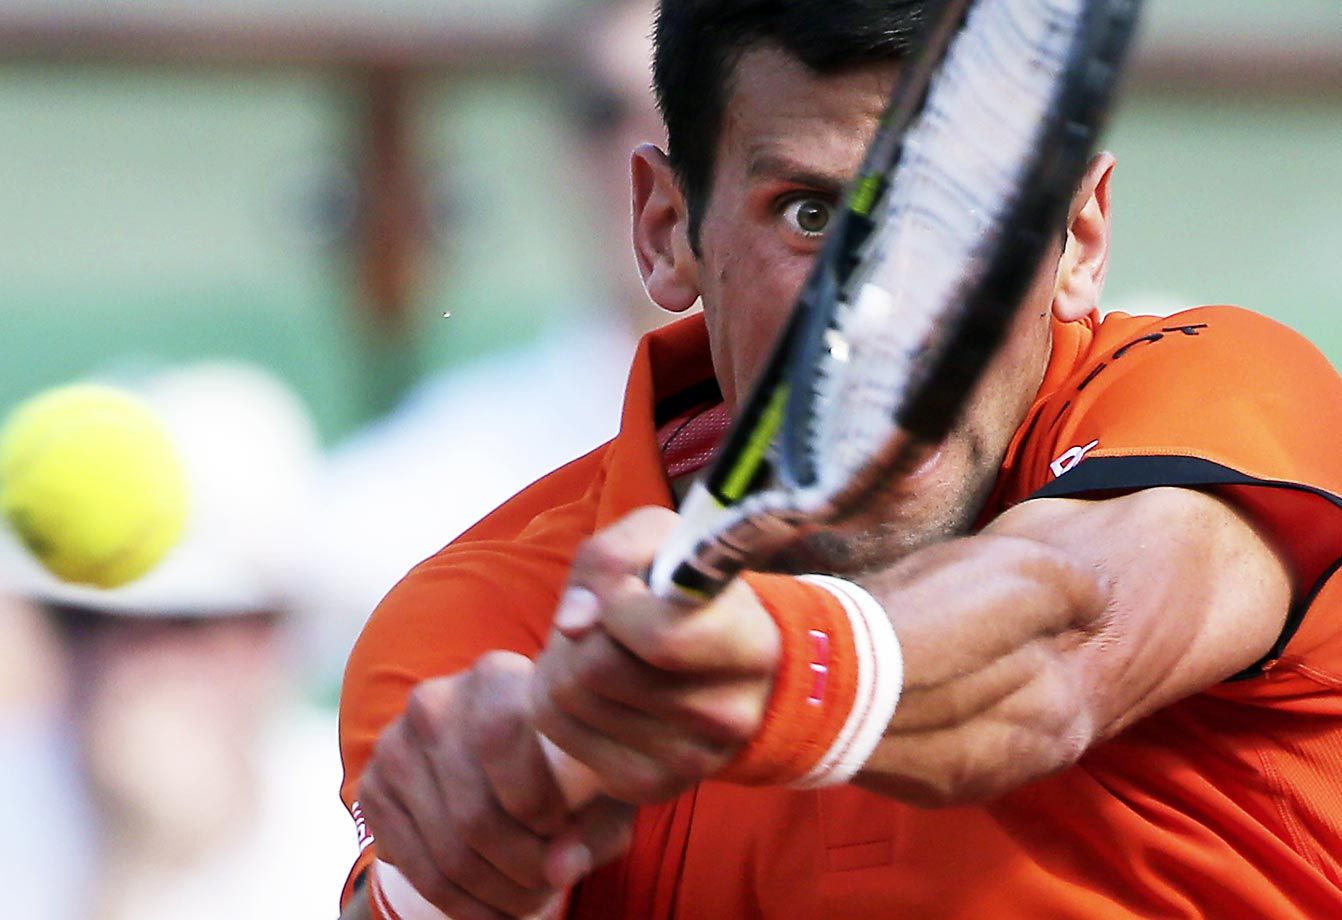 Novak Djokovic makes a feverish return to Andy Murray in the French Open semifinal match at the Roland Garros stadium in Paris on June 5.